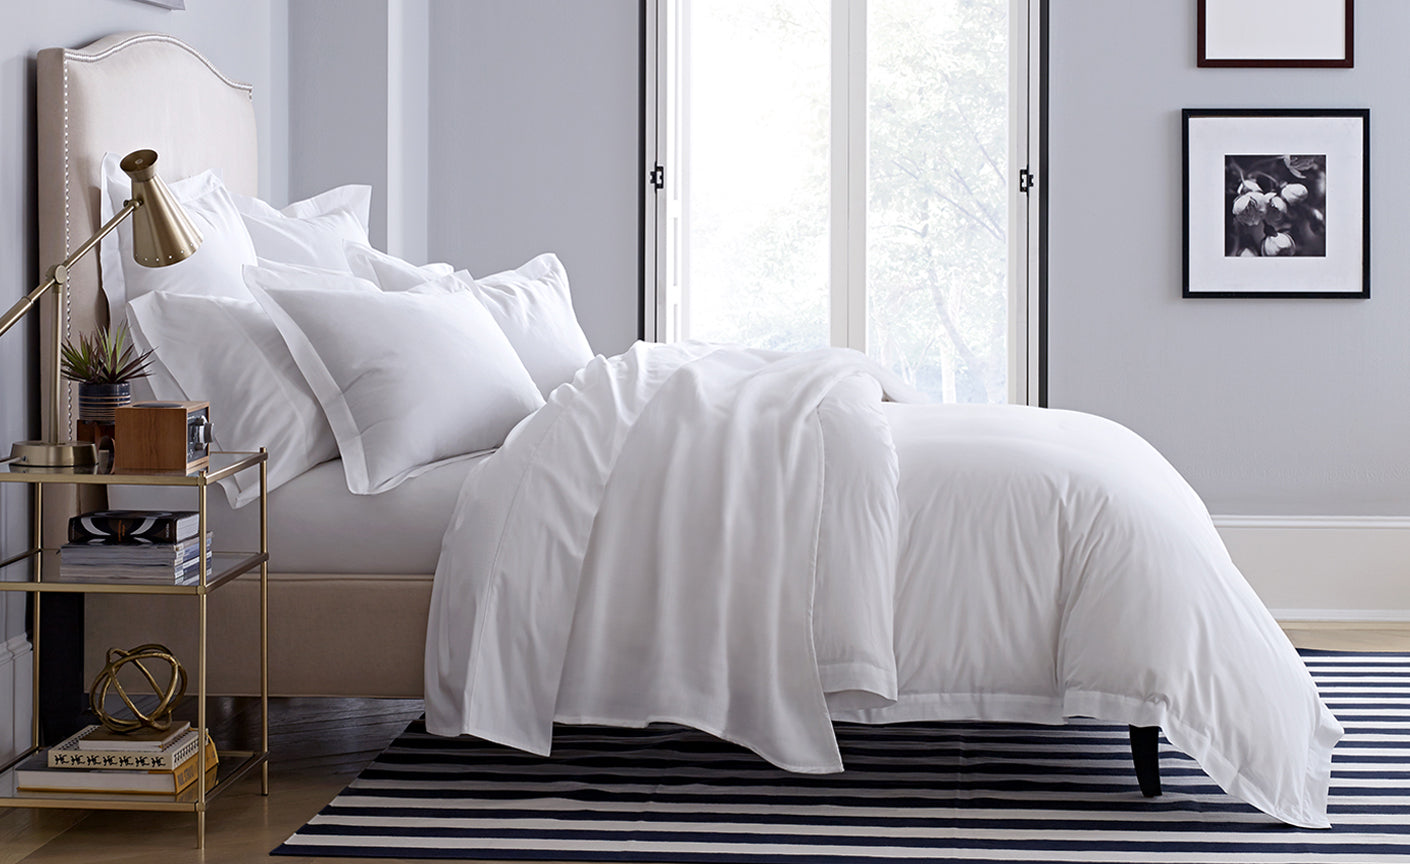 p hei warmest qlt fmt home wid duvet bedding comforter down fieldcrest comforters alternative c target n inserts